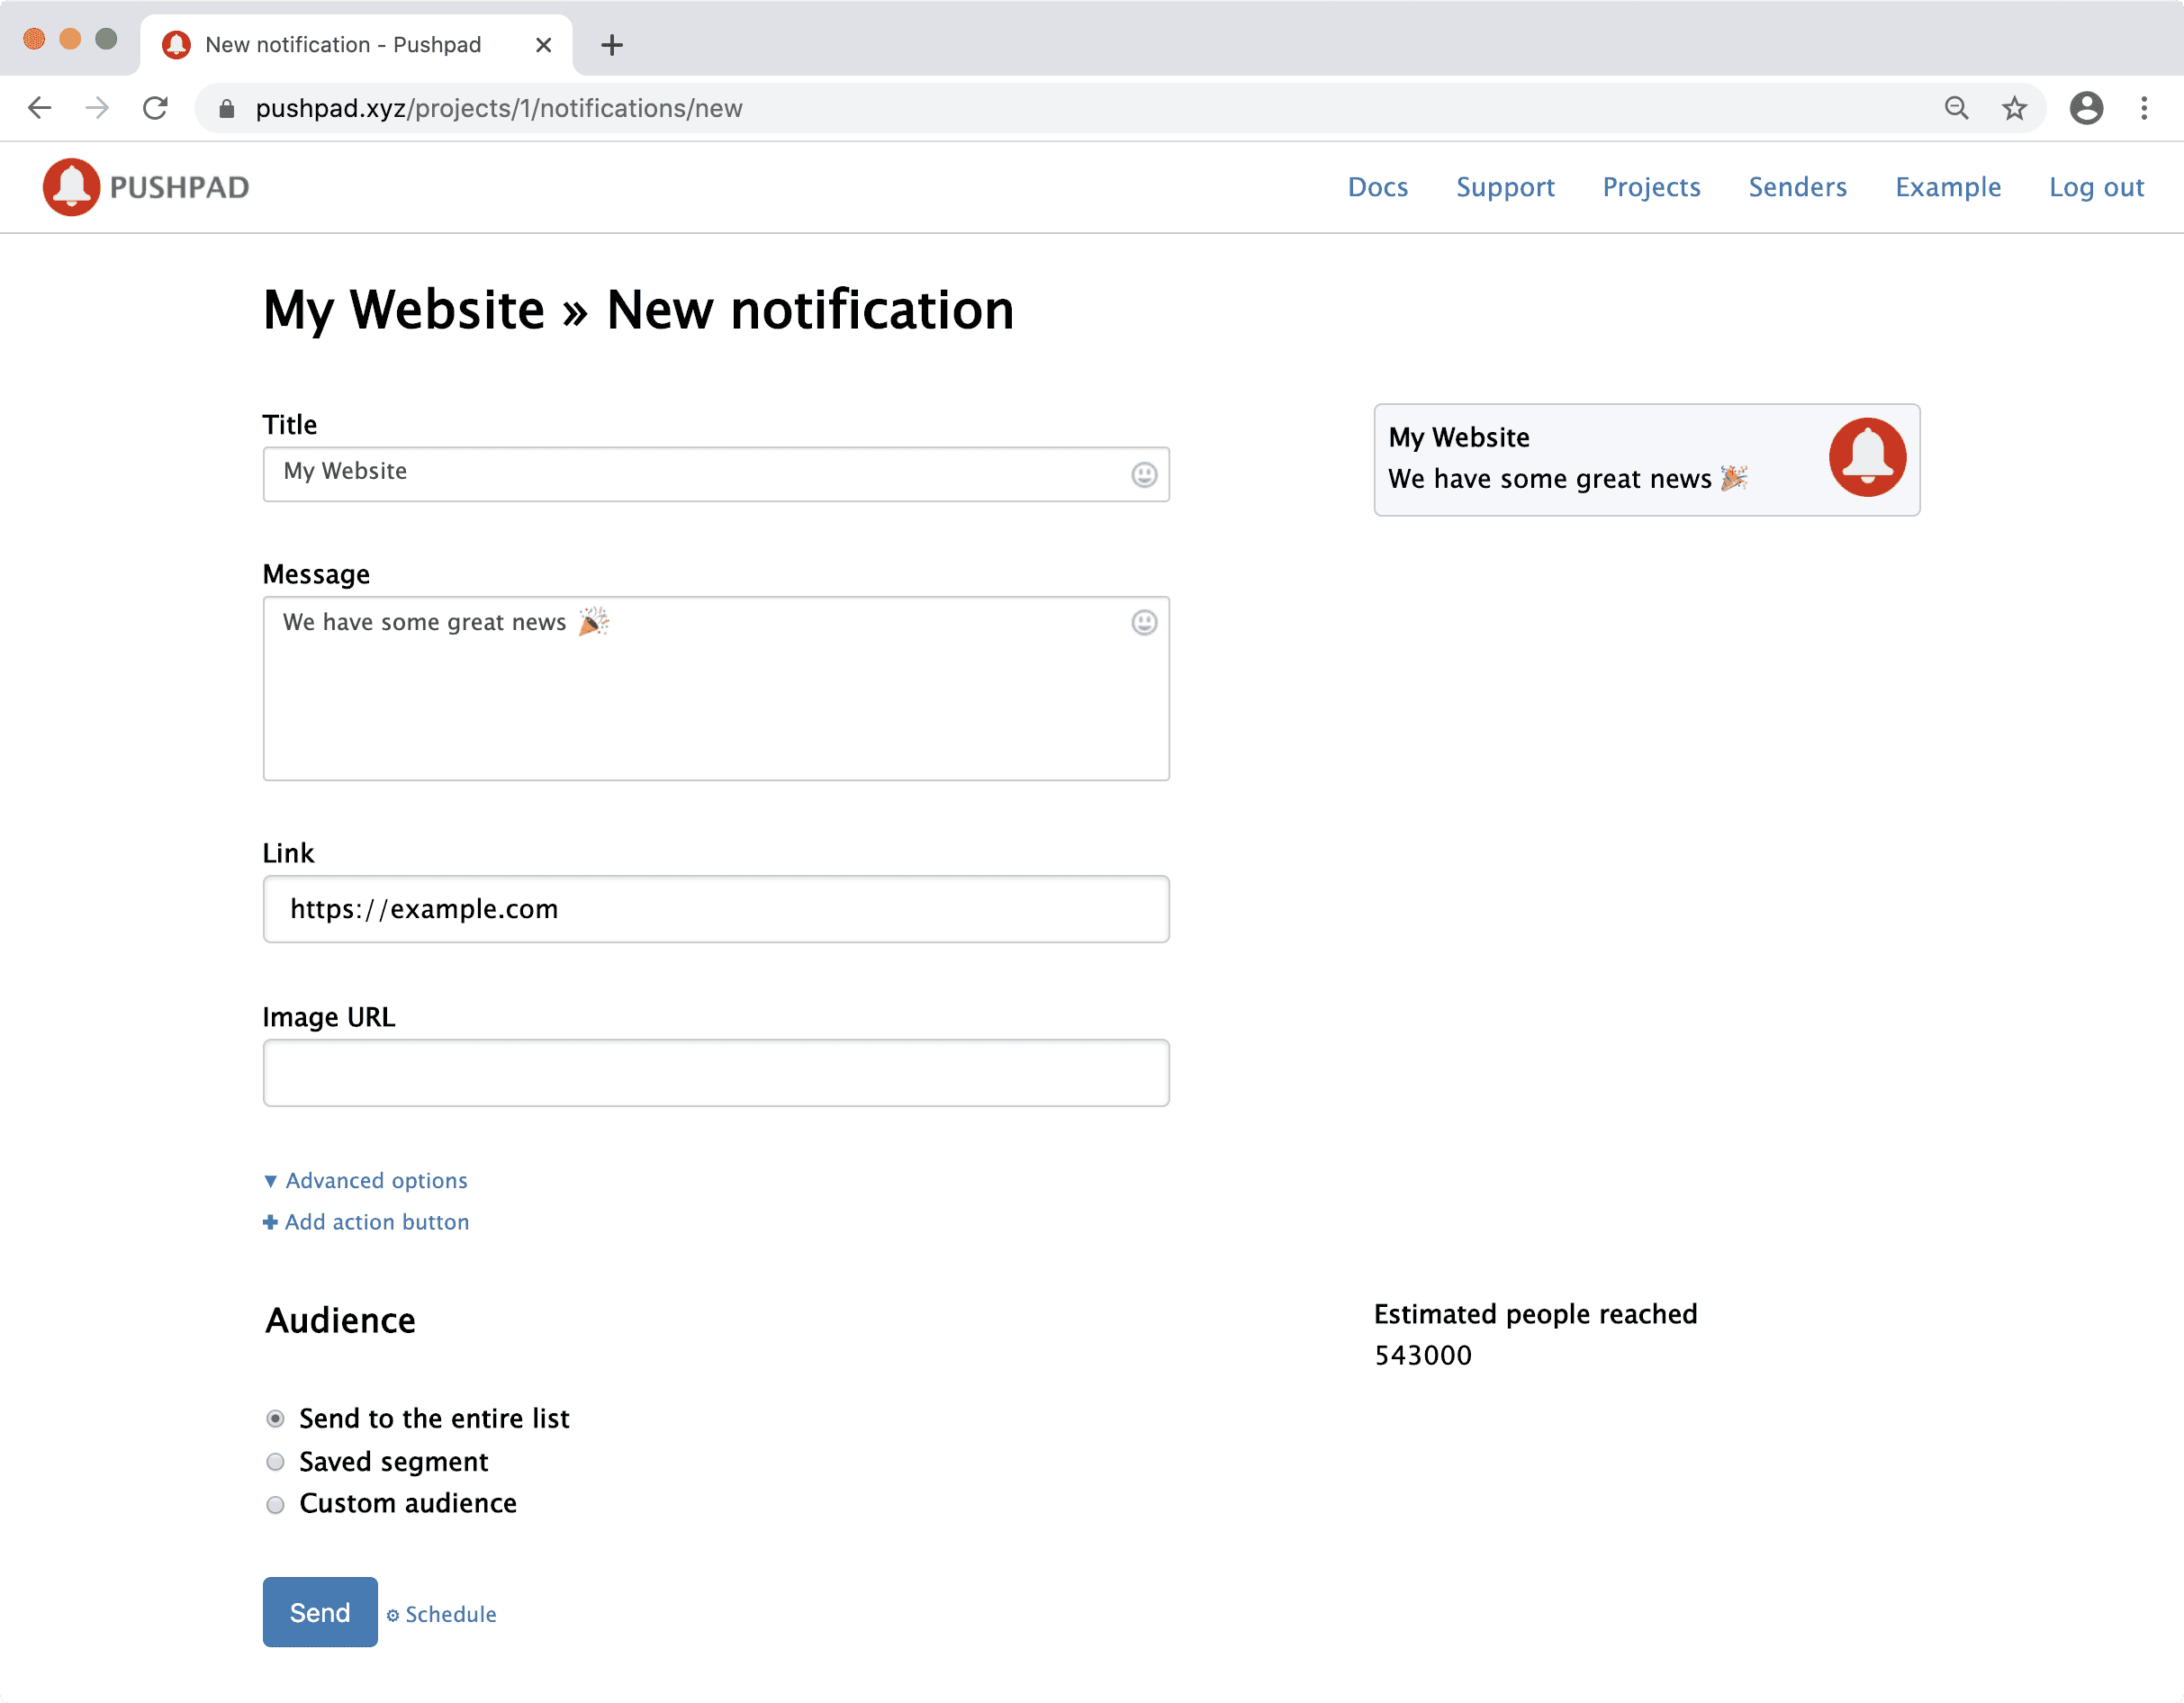 Sending a web push notification from the Pushpad dashboard